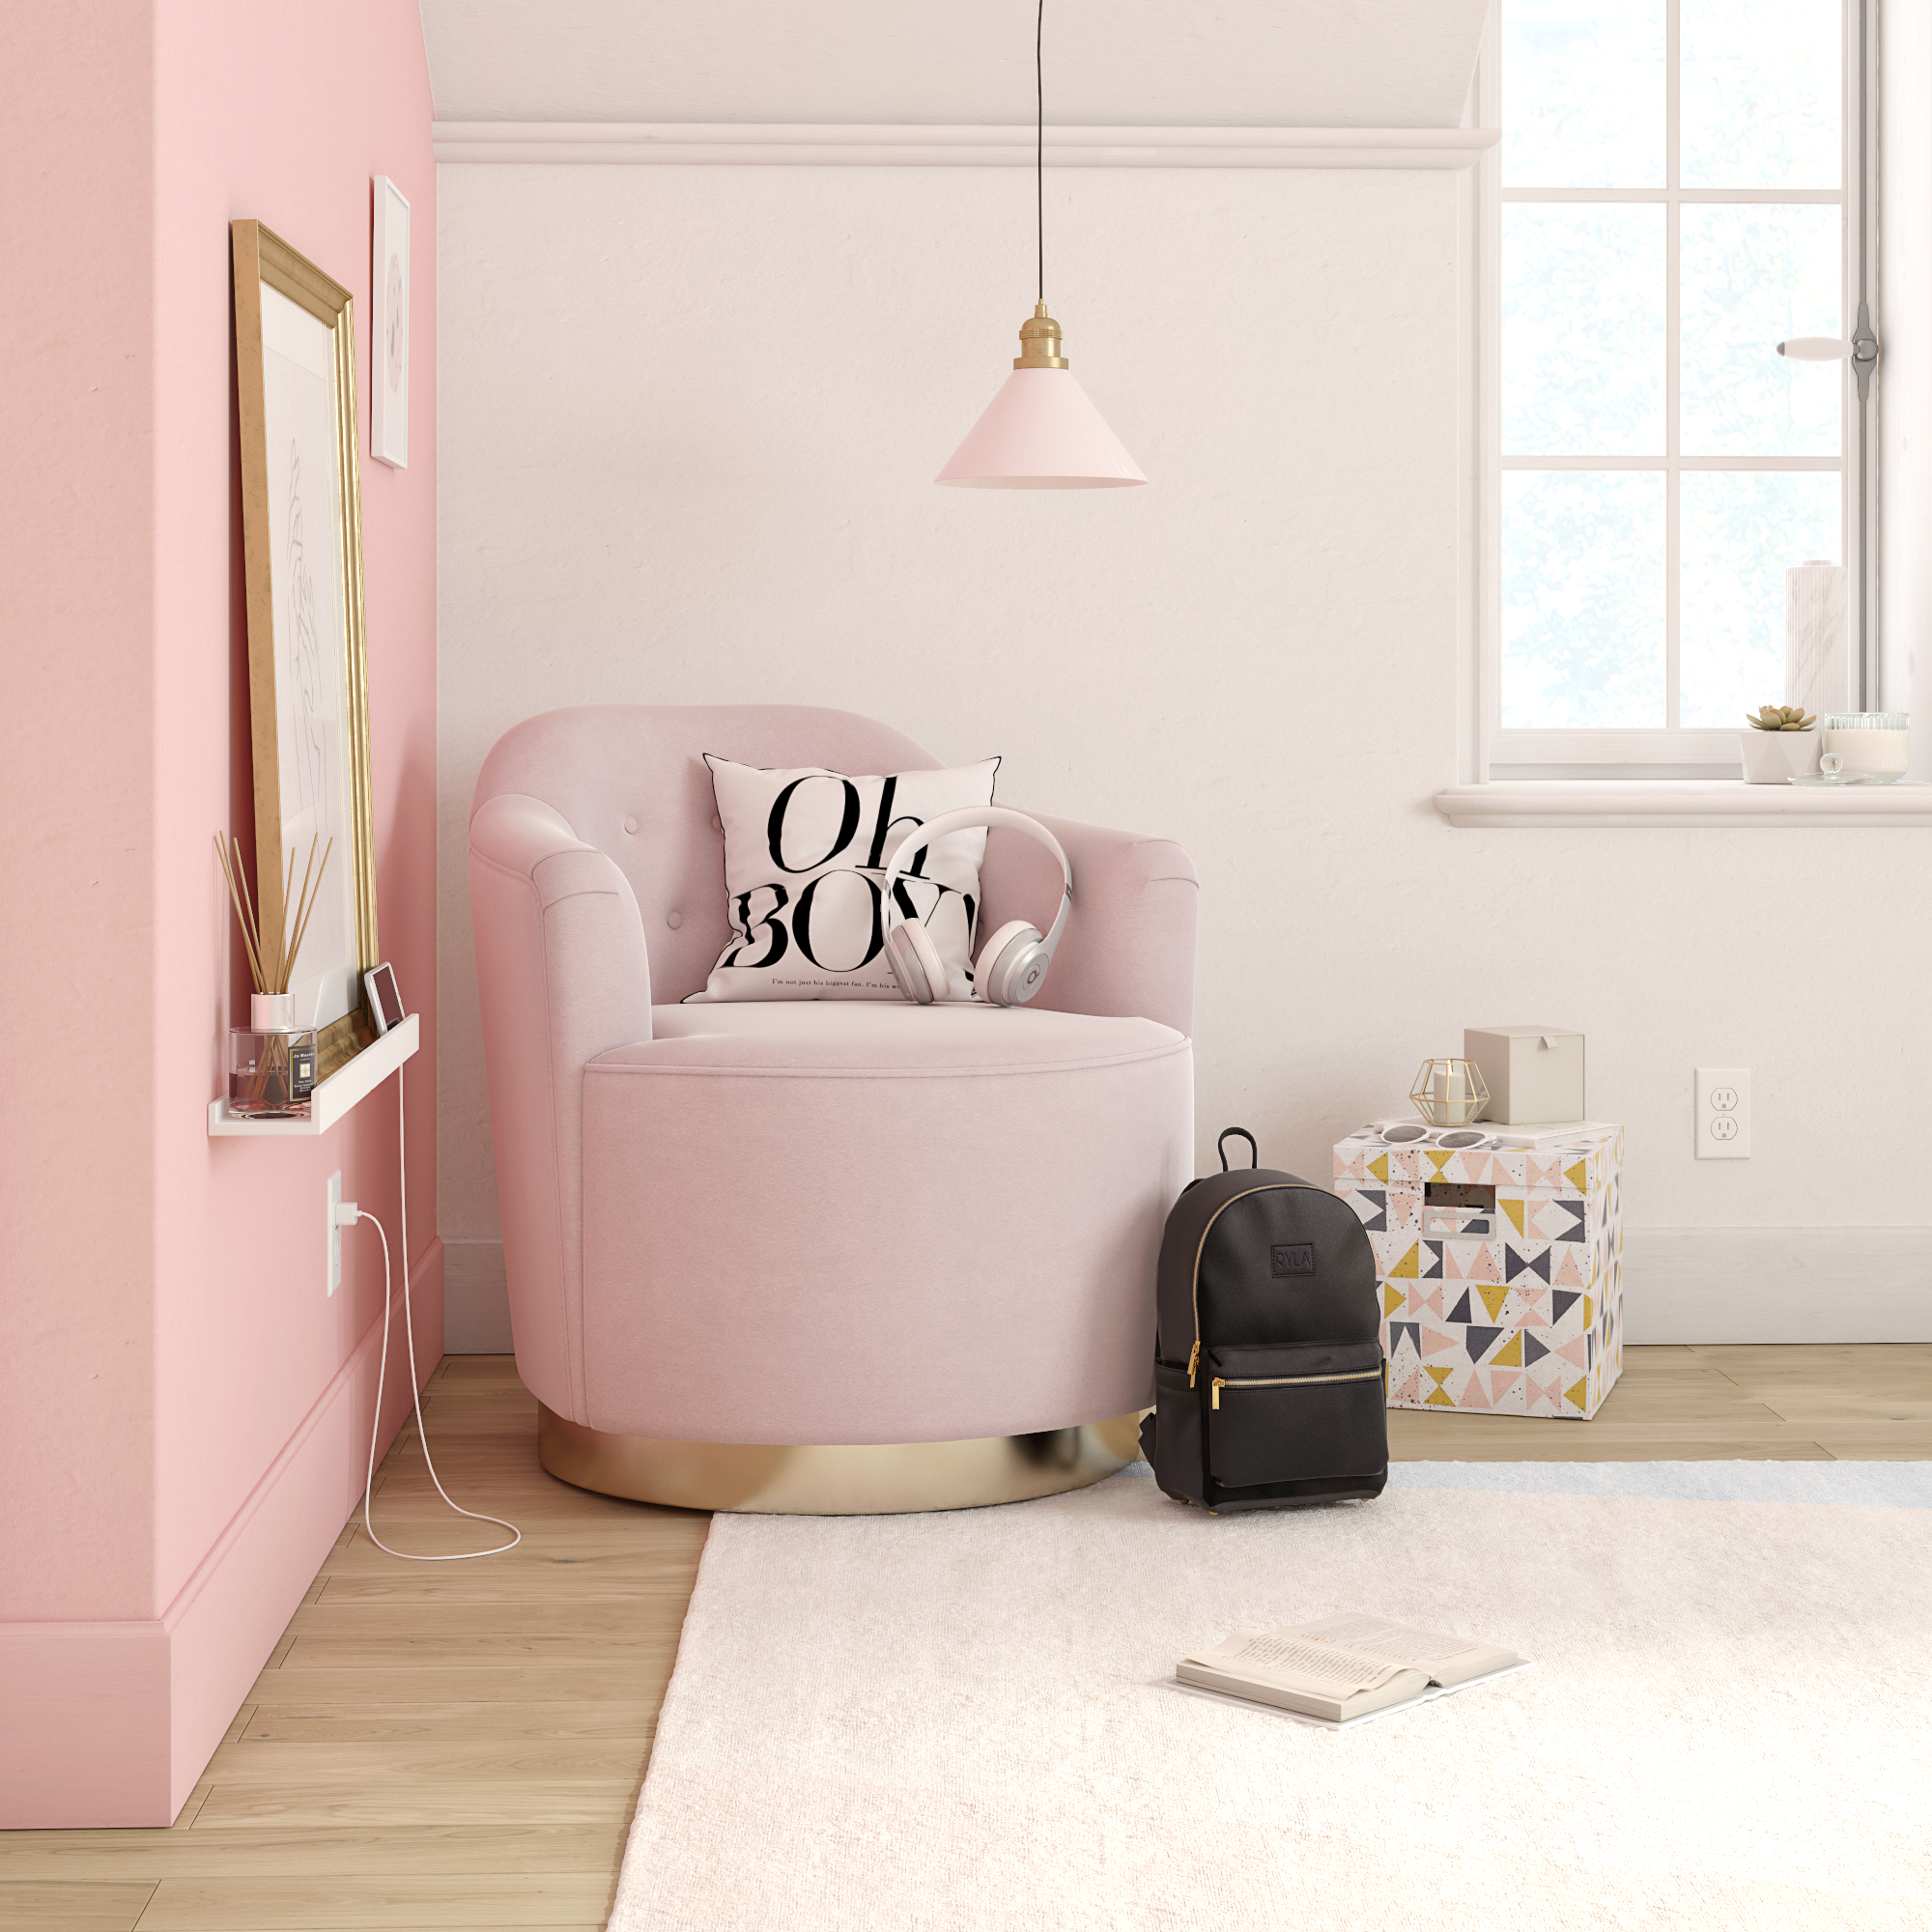 Home Comfy living room furniture, Pink office chair